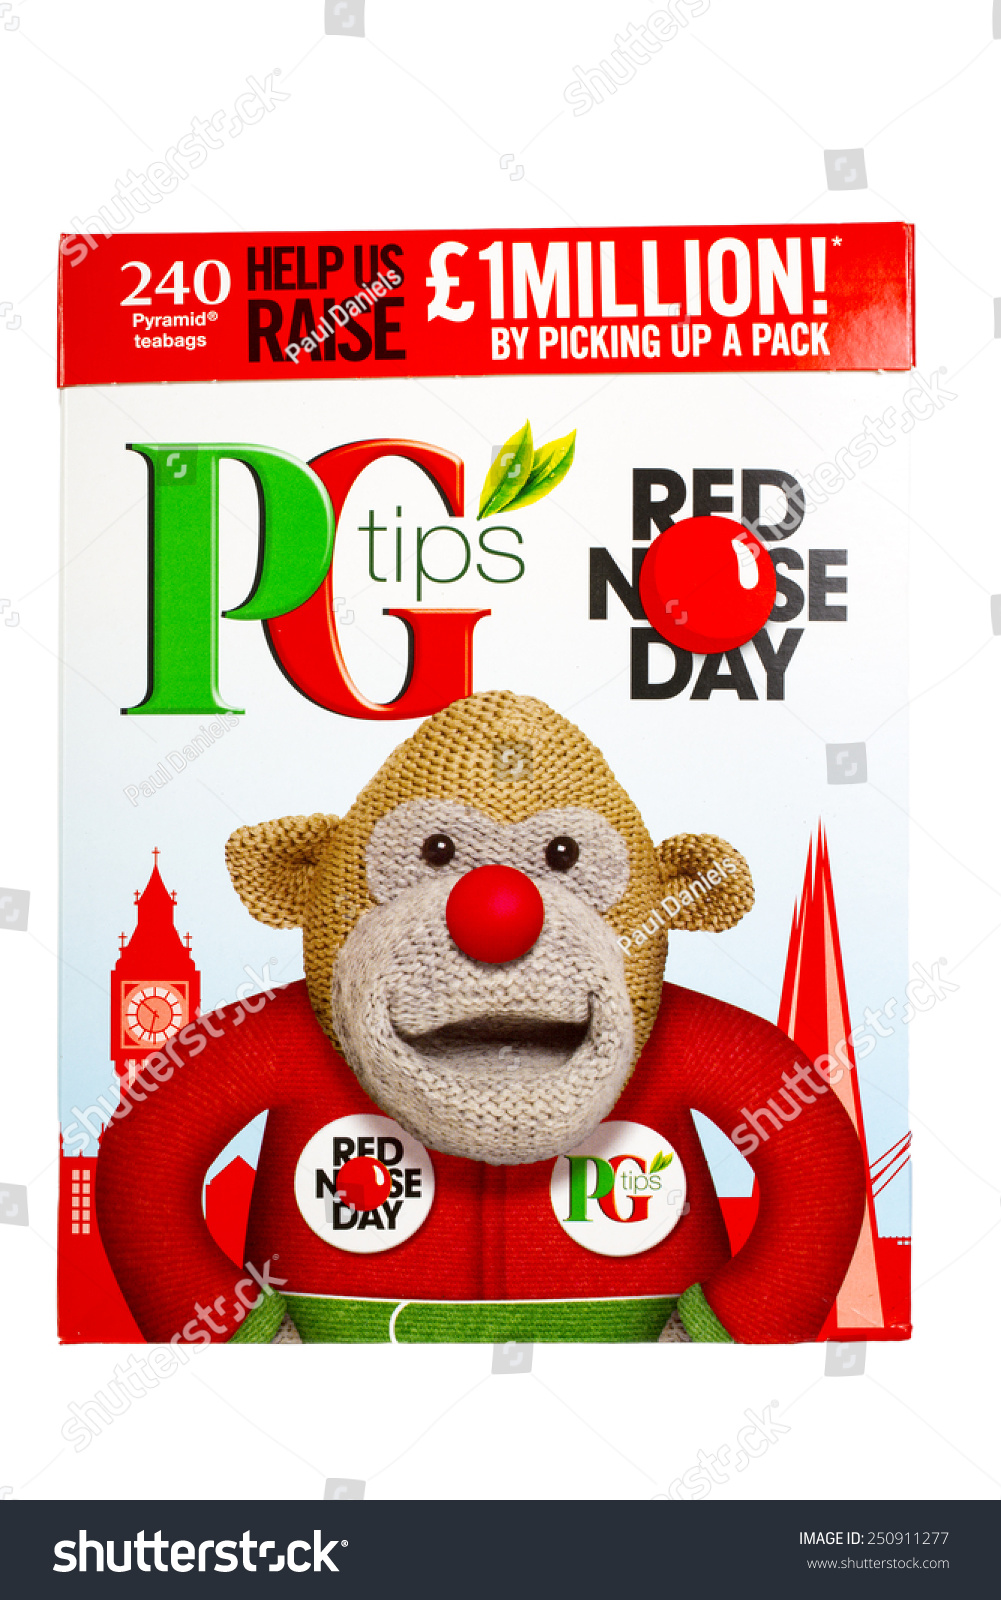 Slough uk february 8 2015 red stock photo 250911277 shutterstock slough uk february 8 2015 red nose day celebrated on a box biocorpaavc Images